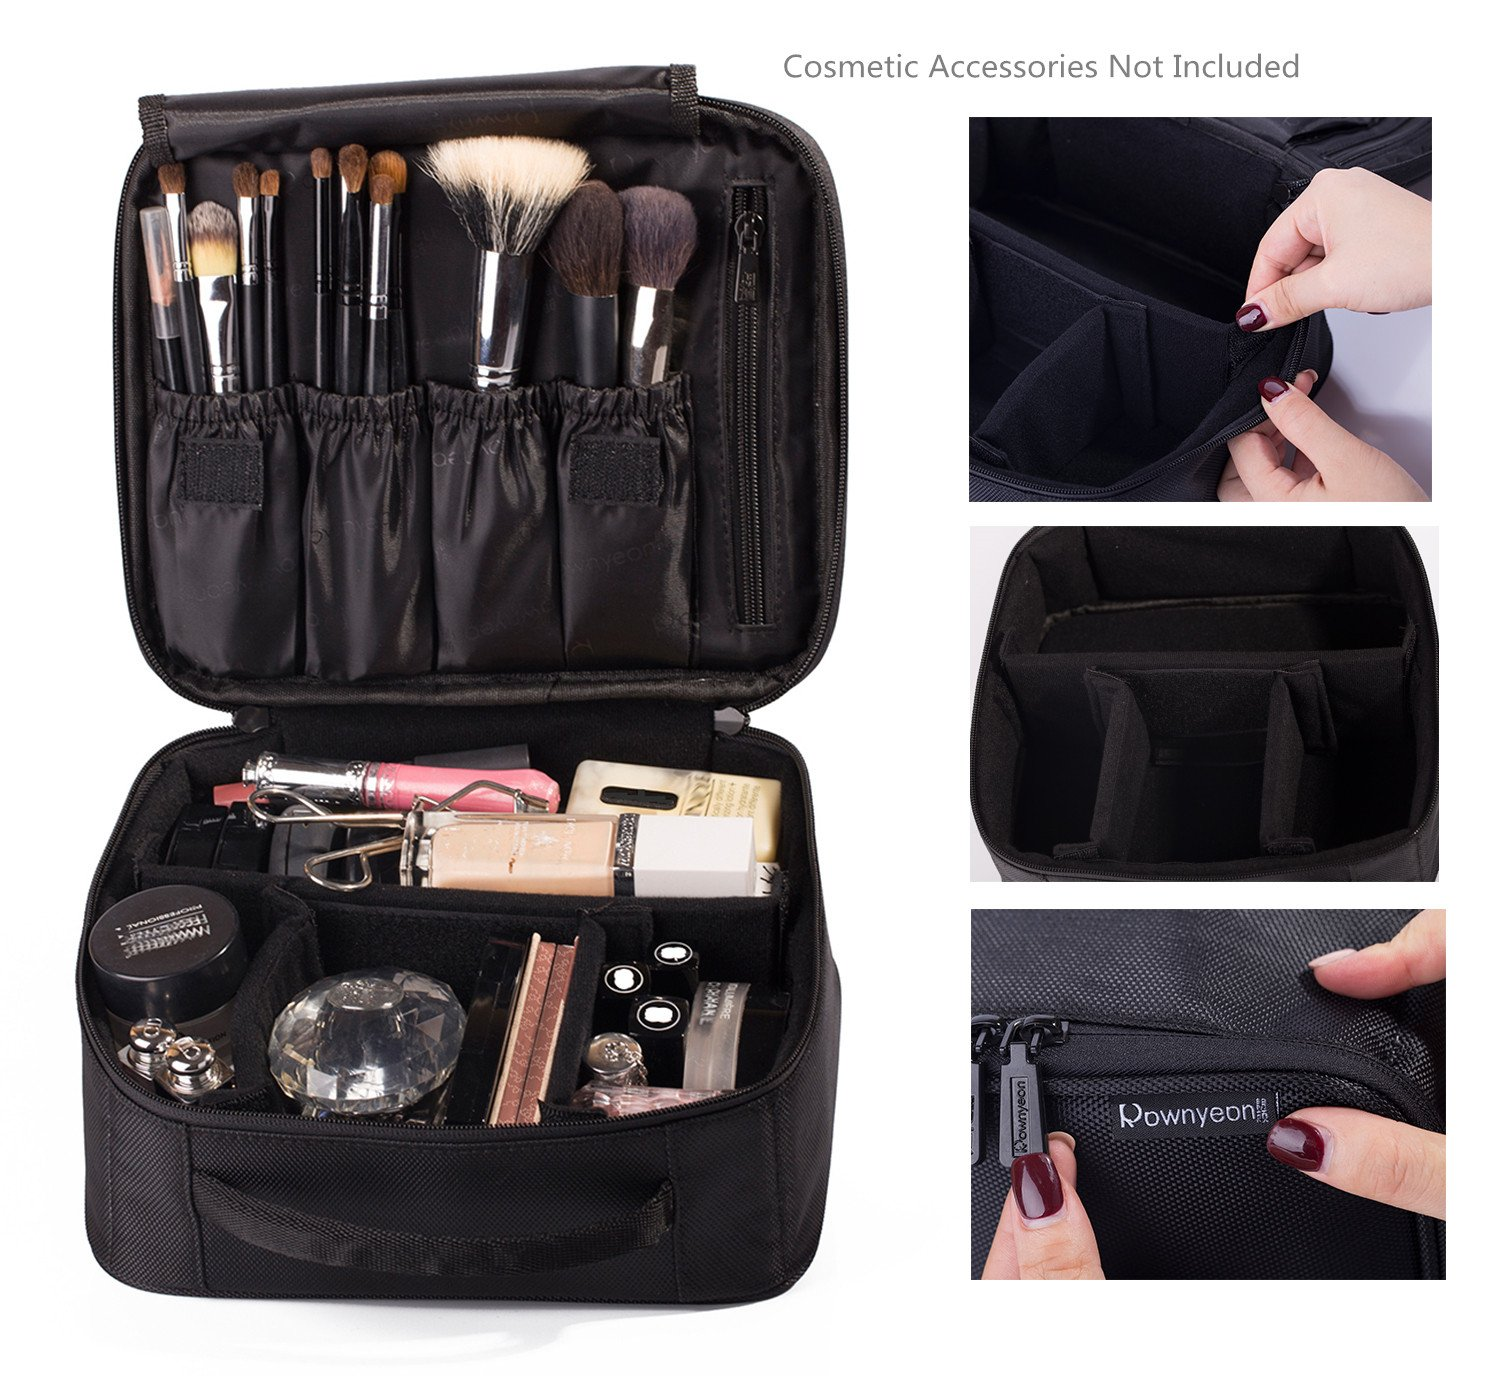 ROWNYEON Portable Professional Travel Make Up Bag Makeup Artist Case Train Case Cosmetic Make Up Artist Organizer 14.1'- 14.6'' Medium